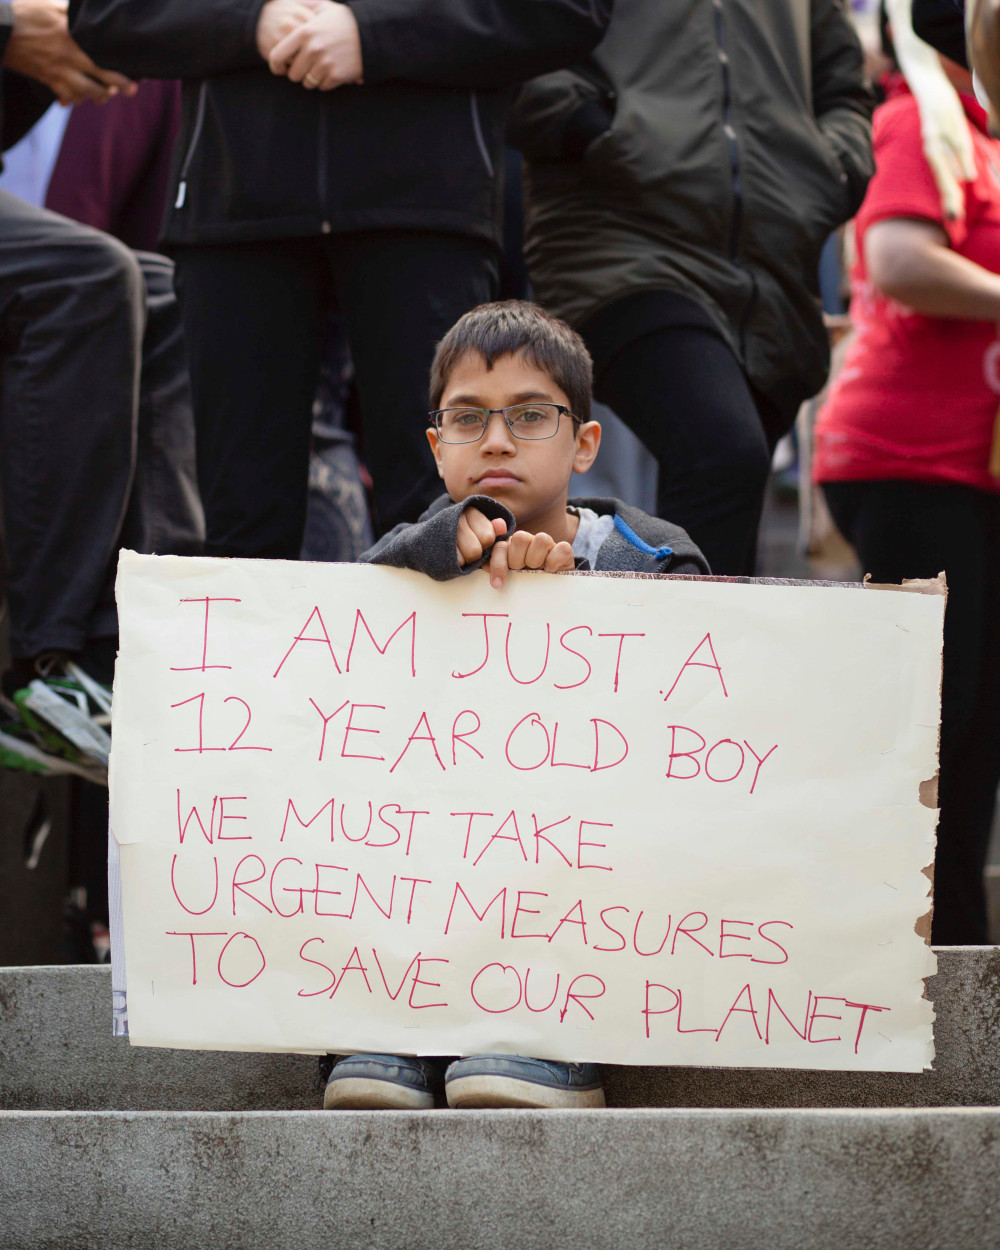 960px version of ClimateStrikeVancouver12YearOld.jpg